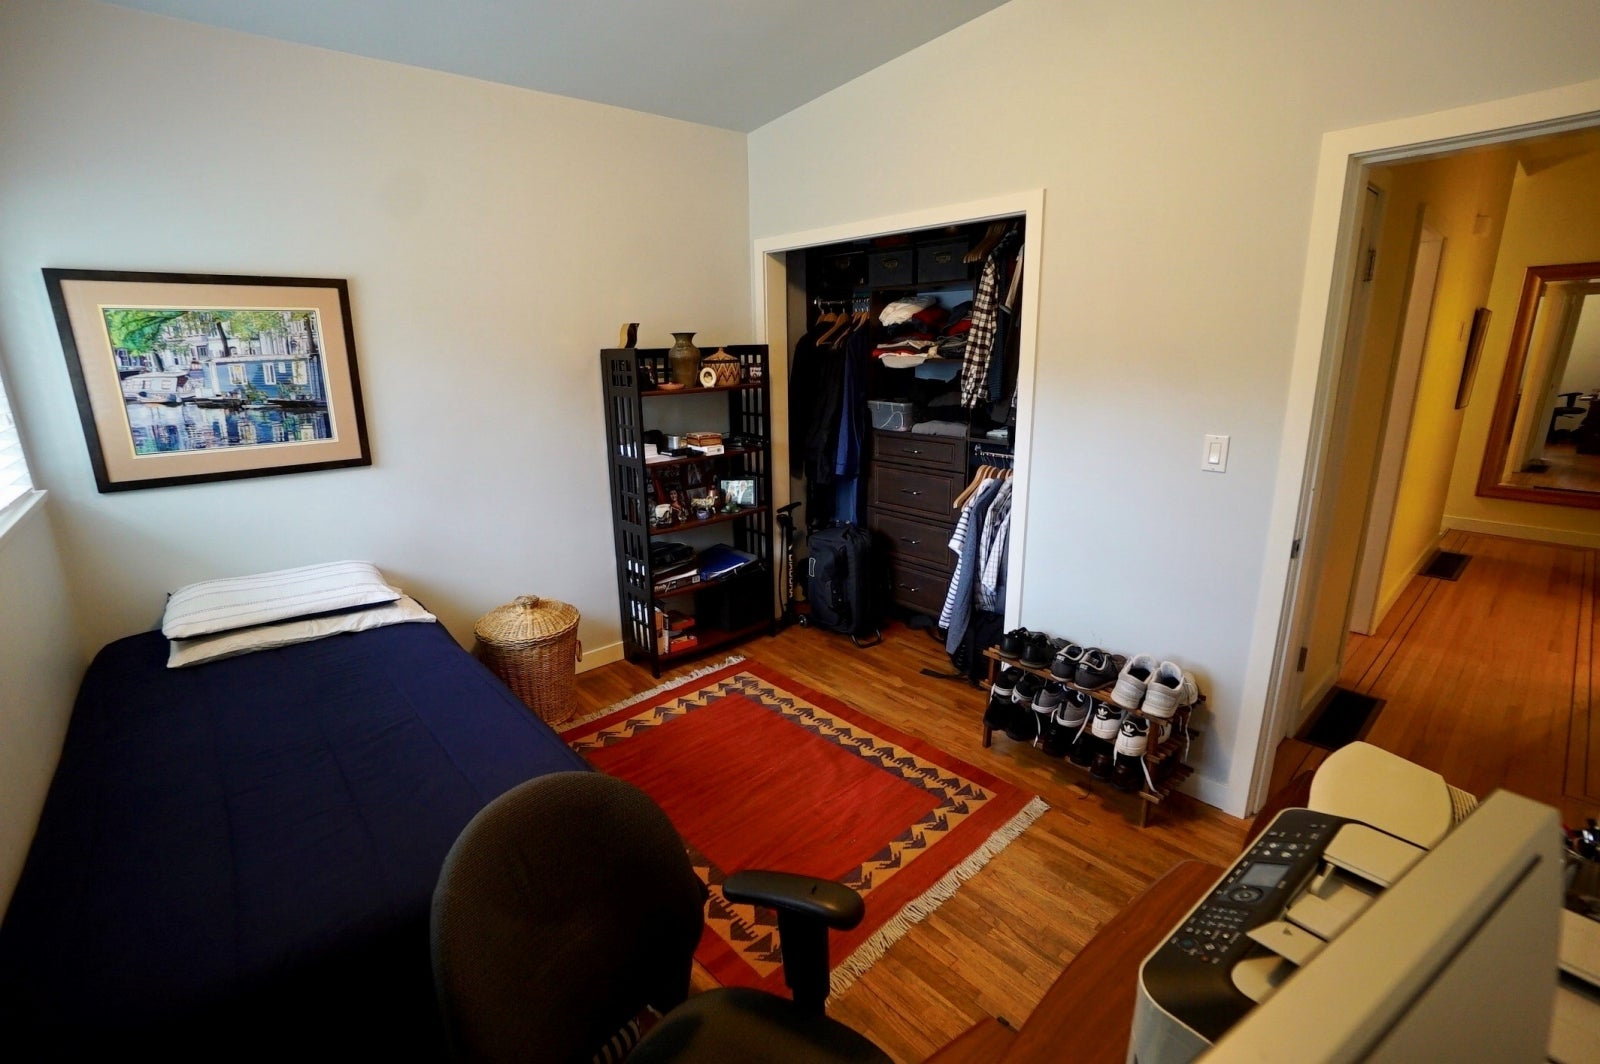 Second Bedroom with Closet Organizer